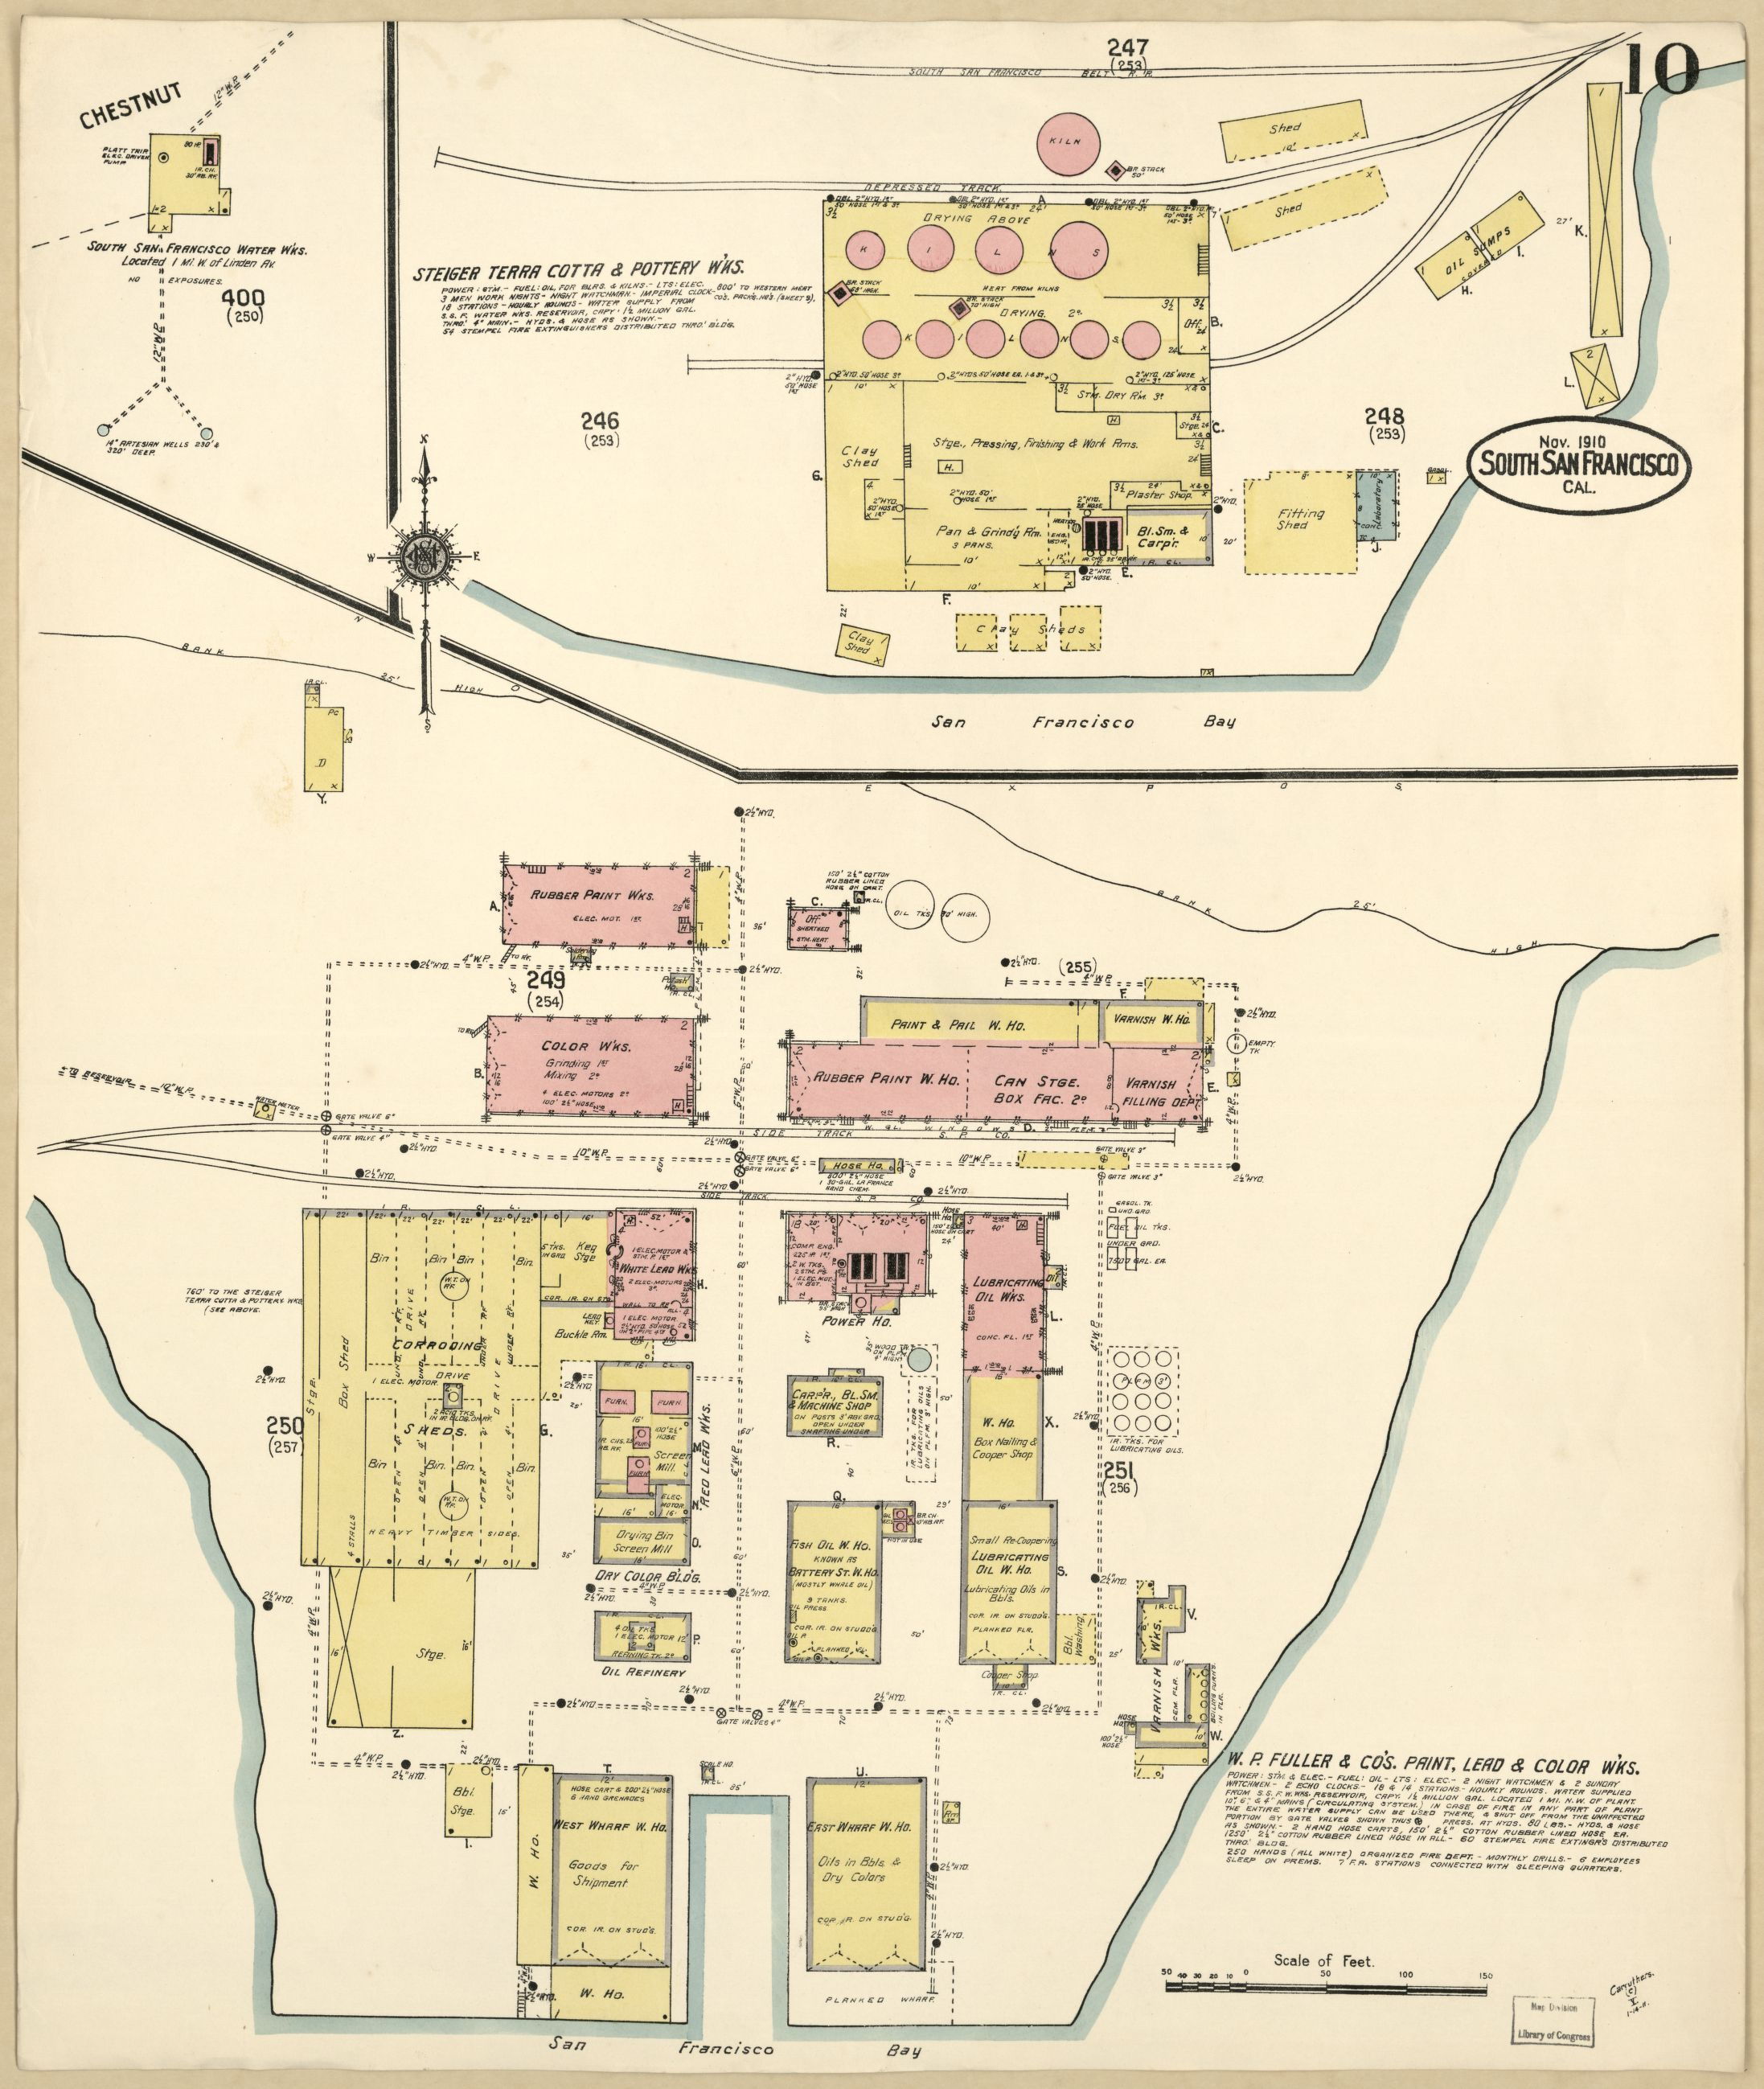 Title Sanborn Fire Insurance Map from South San Francisco San